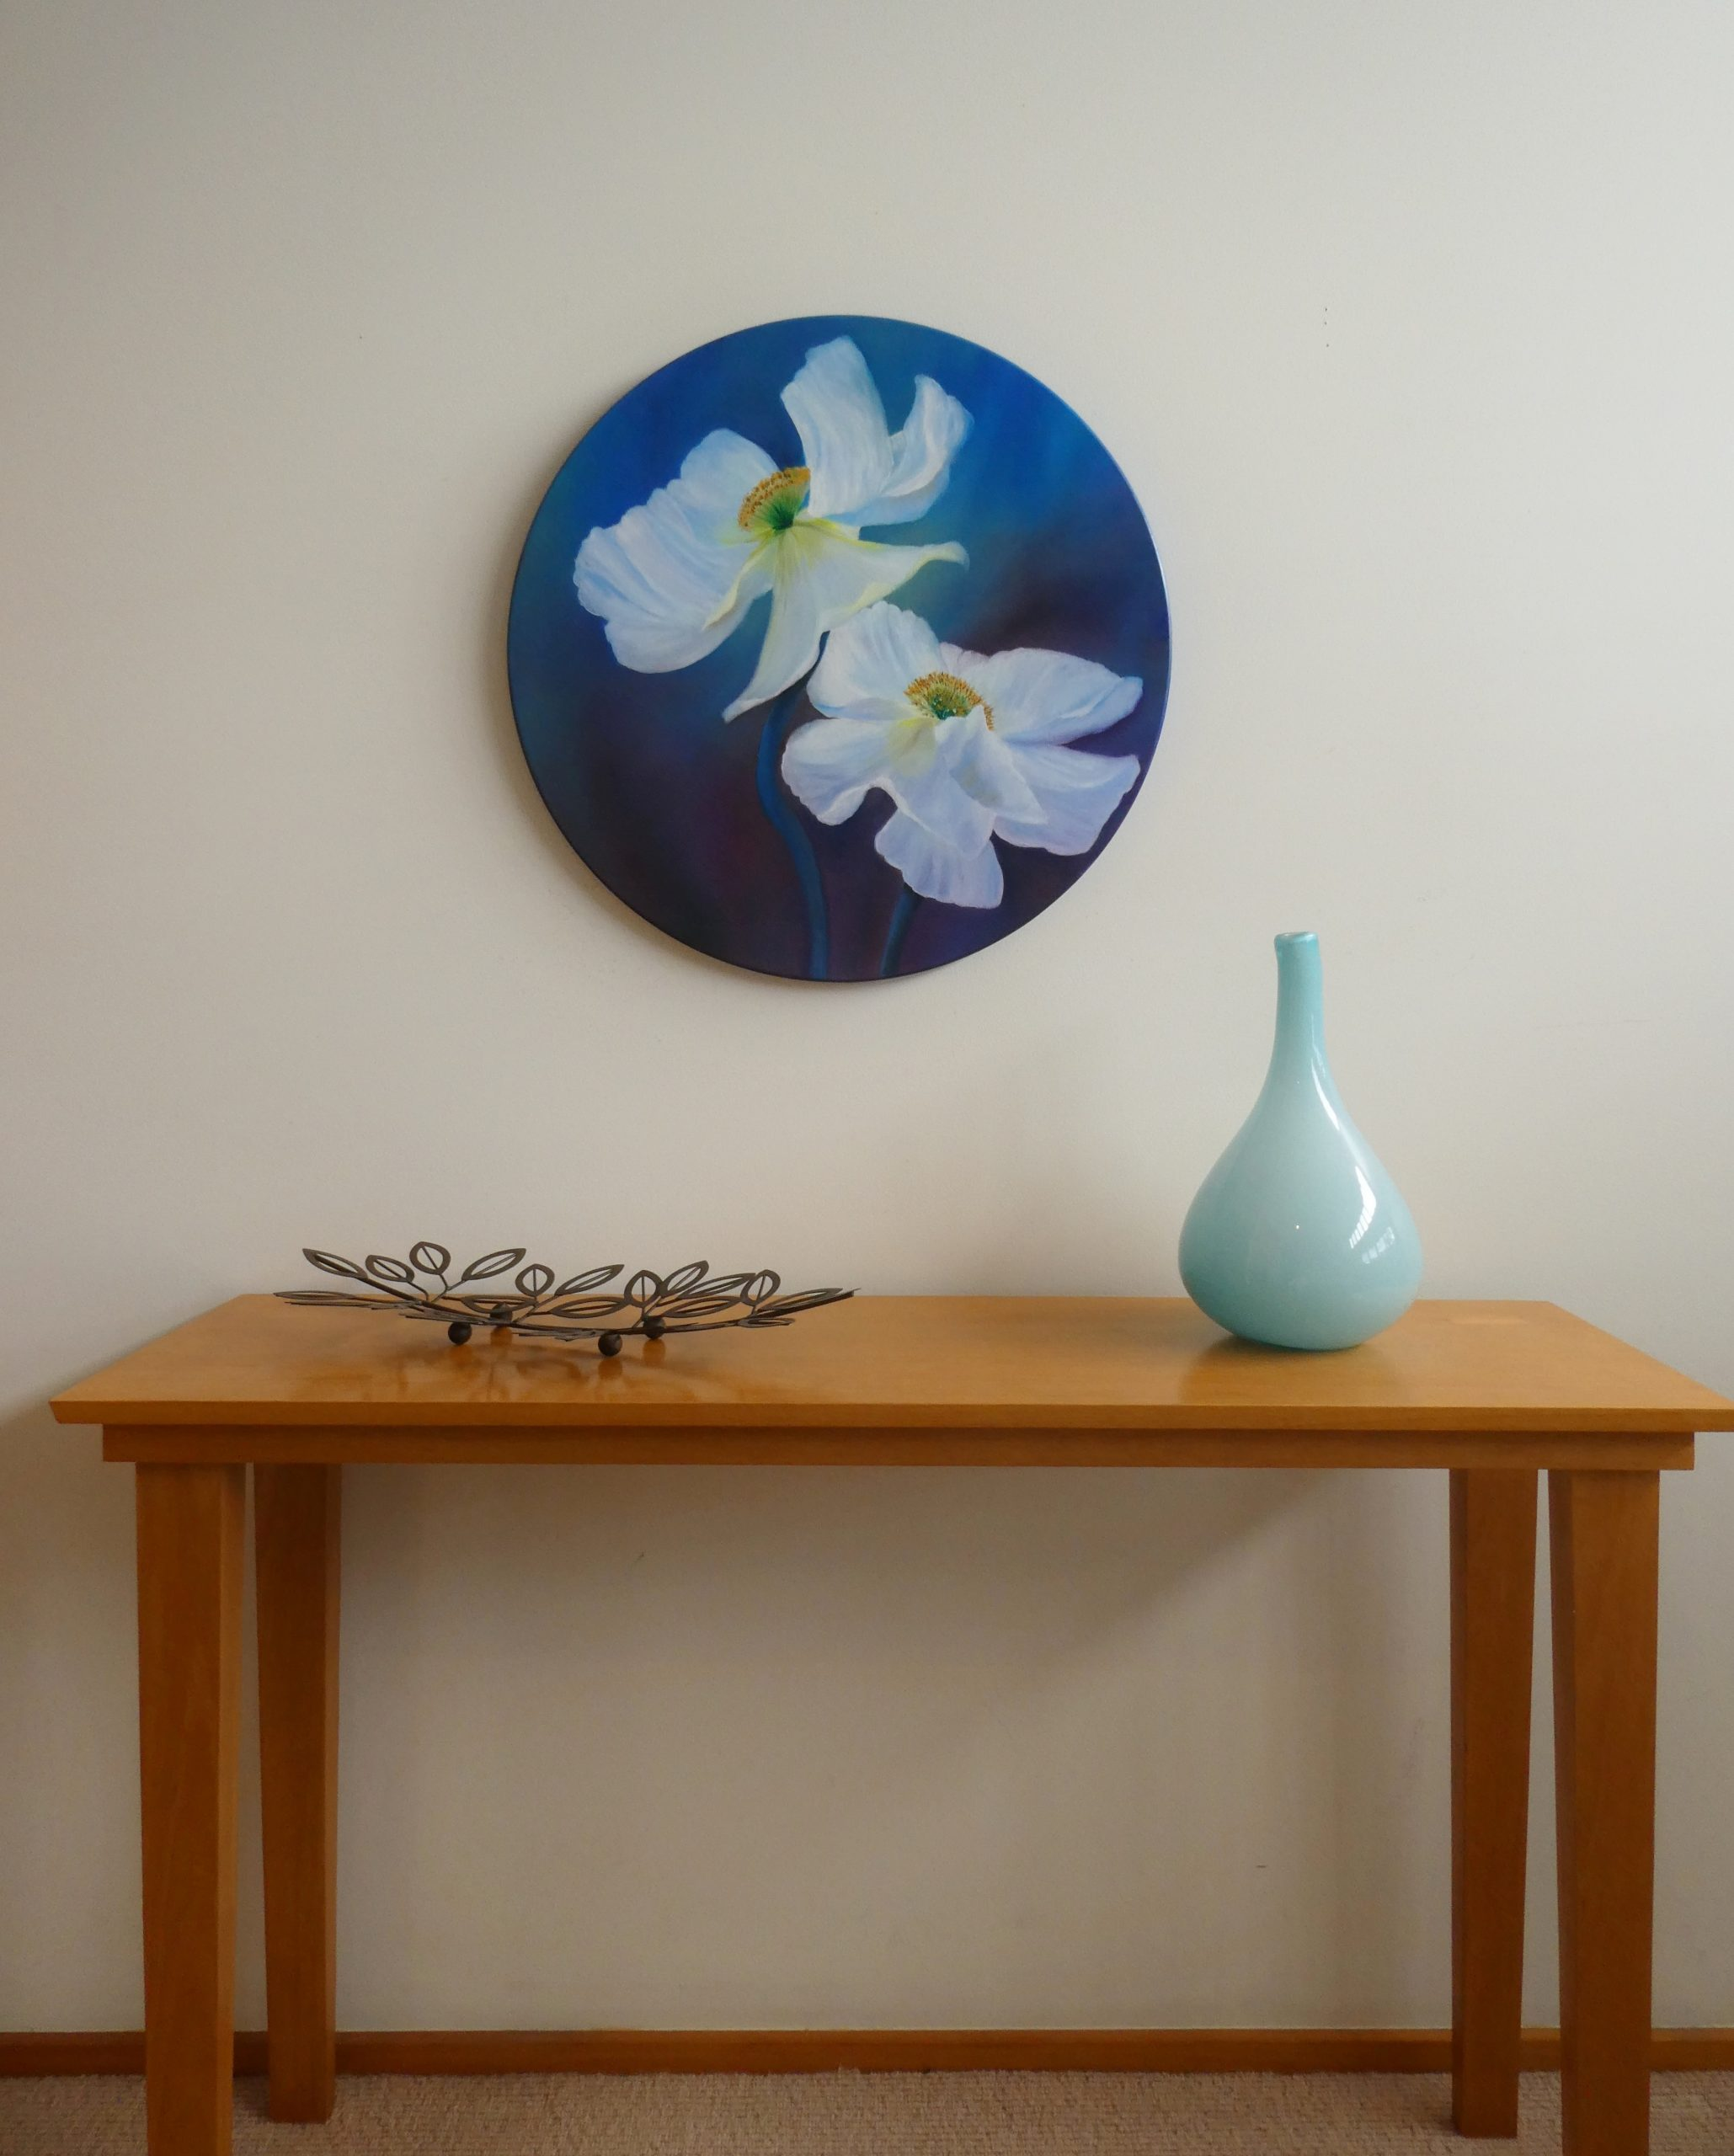 Circular Painting of white flowers